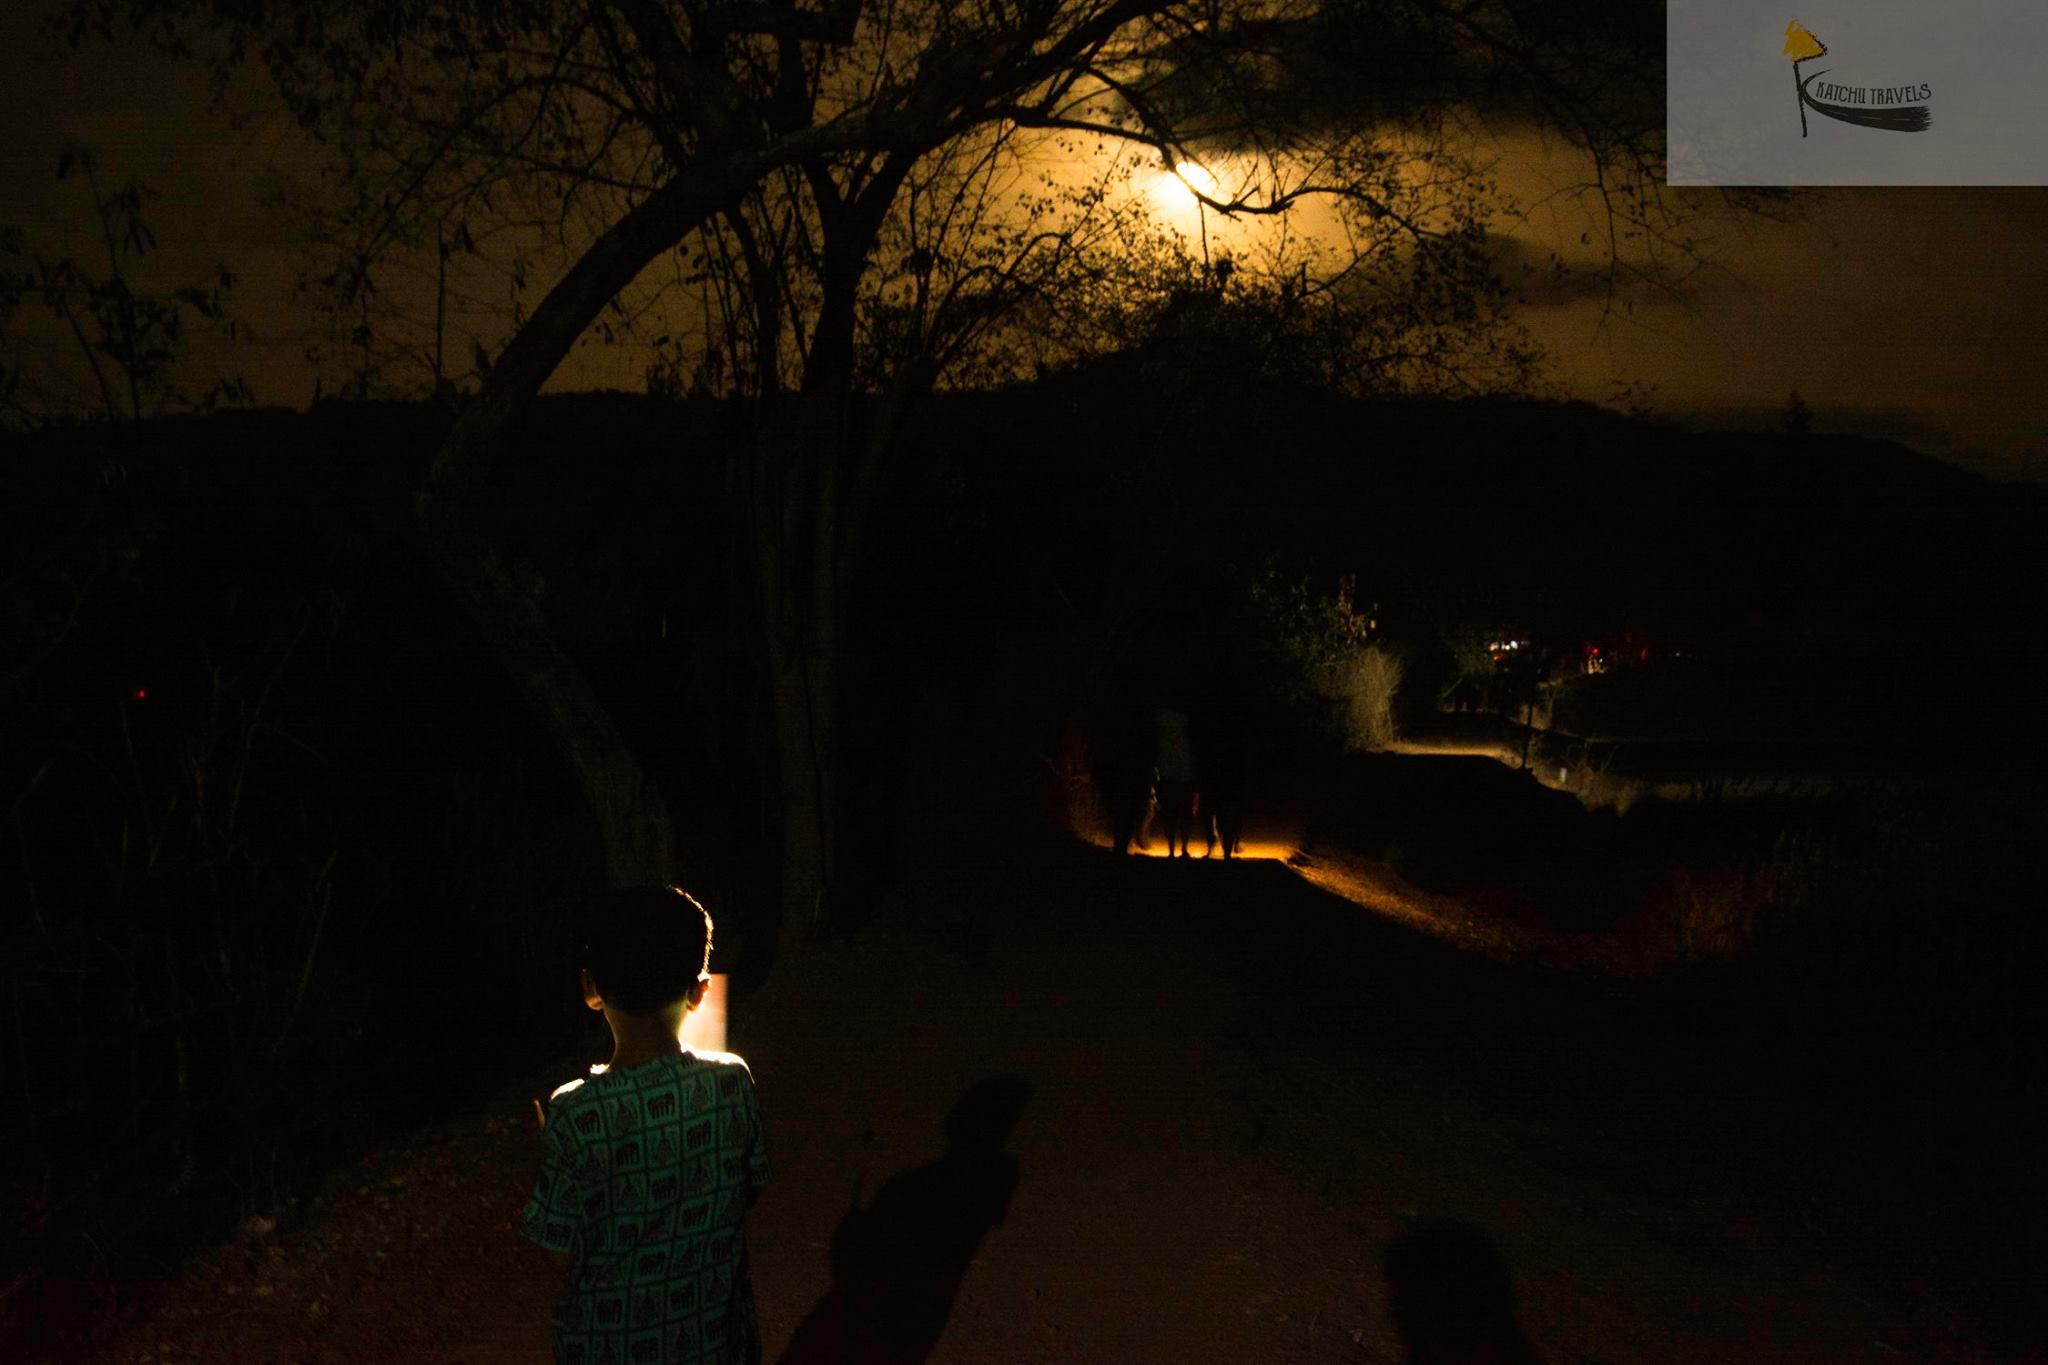 Nandu holding a mobile light against his face, as we walk back under the full moon light to our parking spot